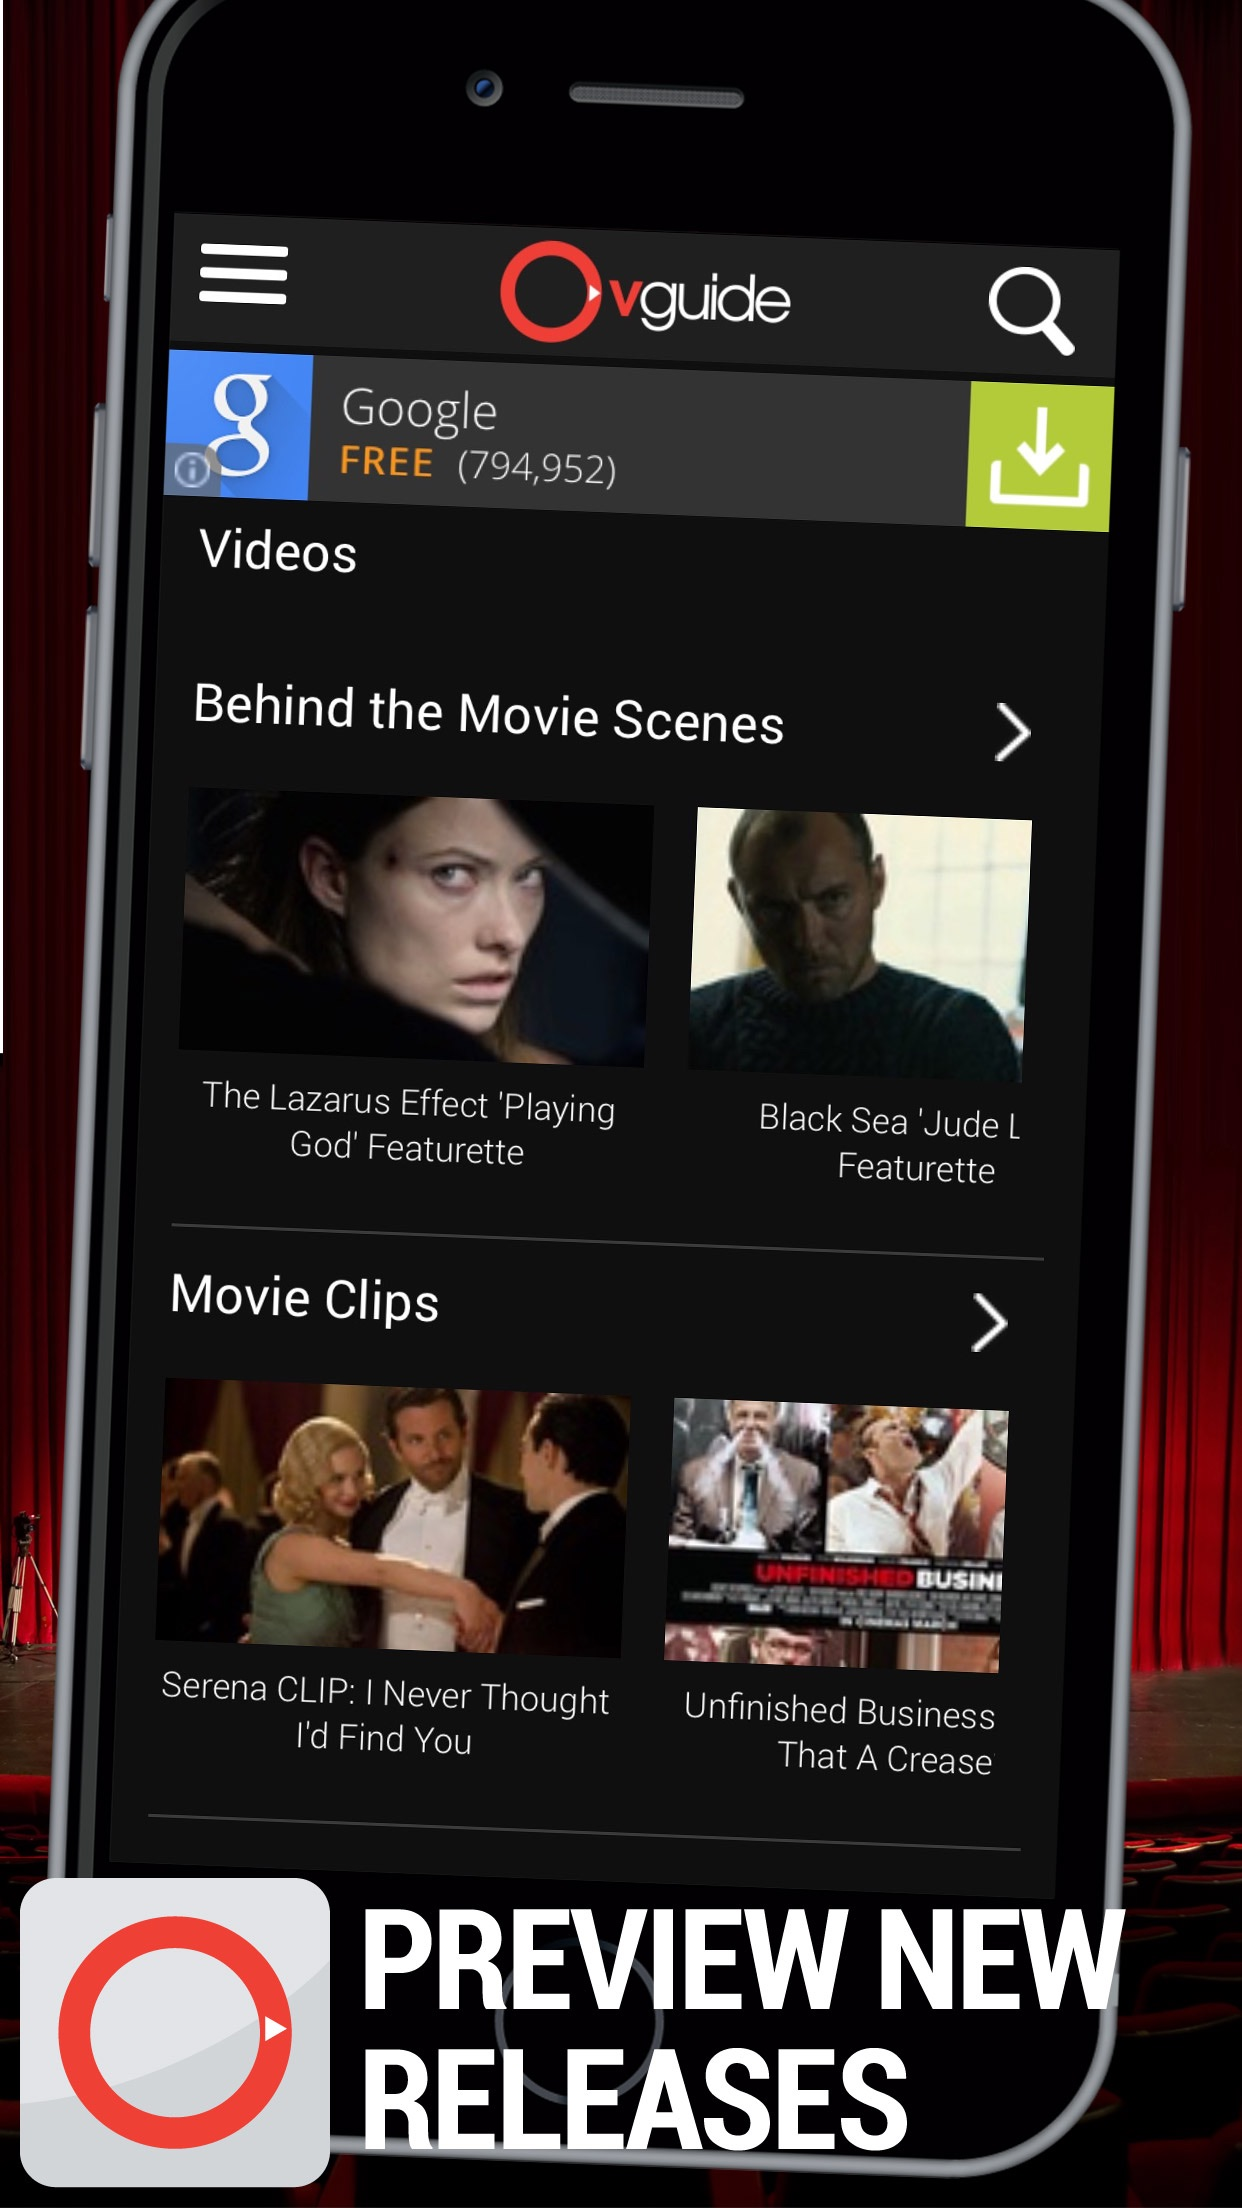 Watch Free Movies & TV - OVGuide Screenshot